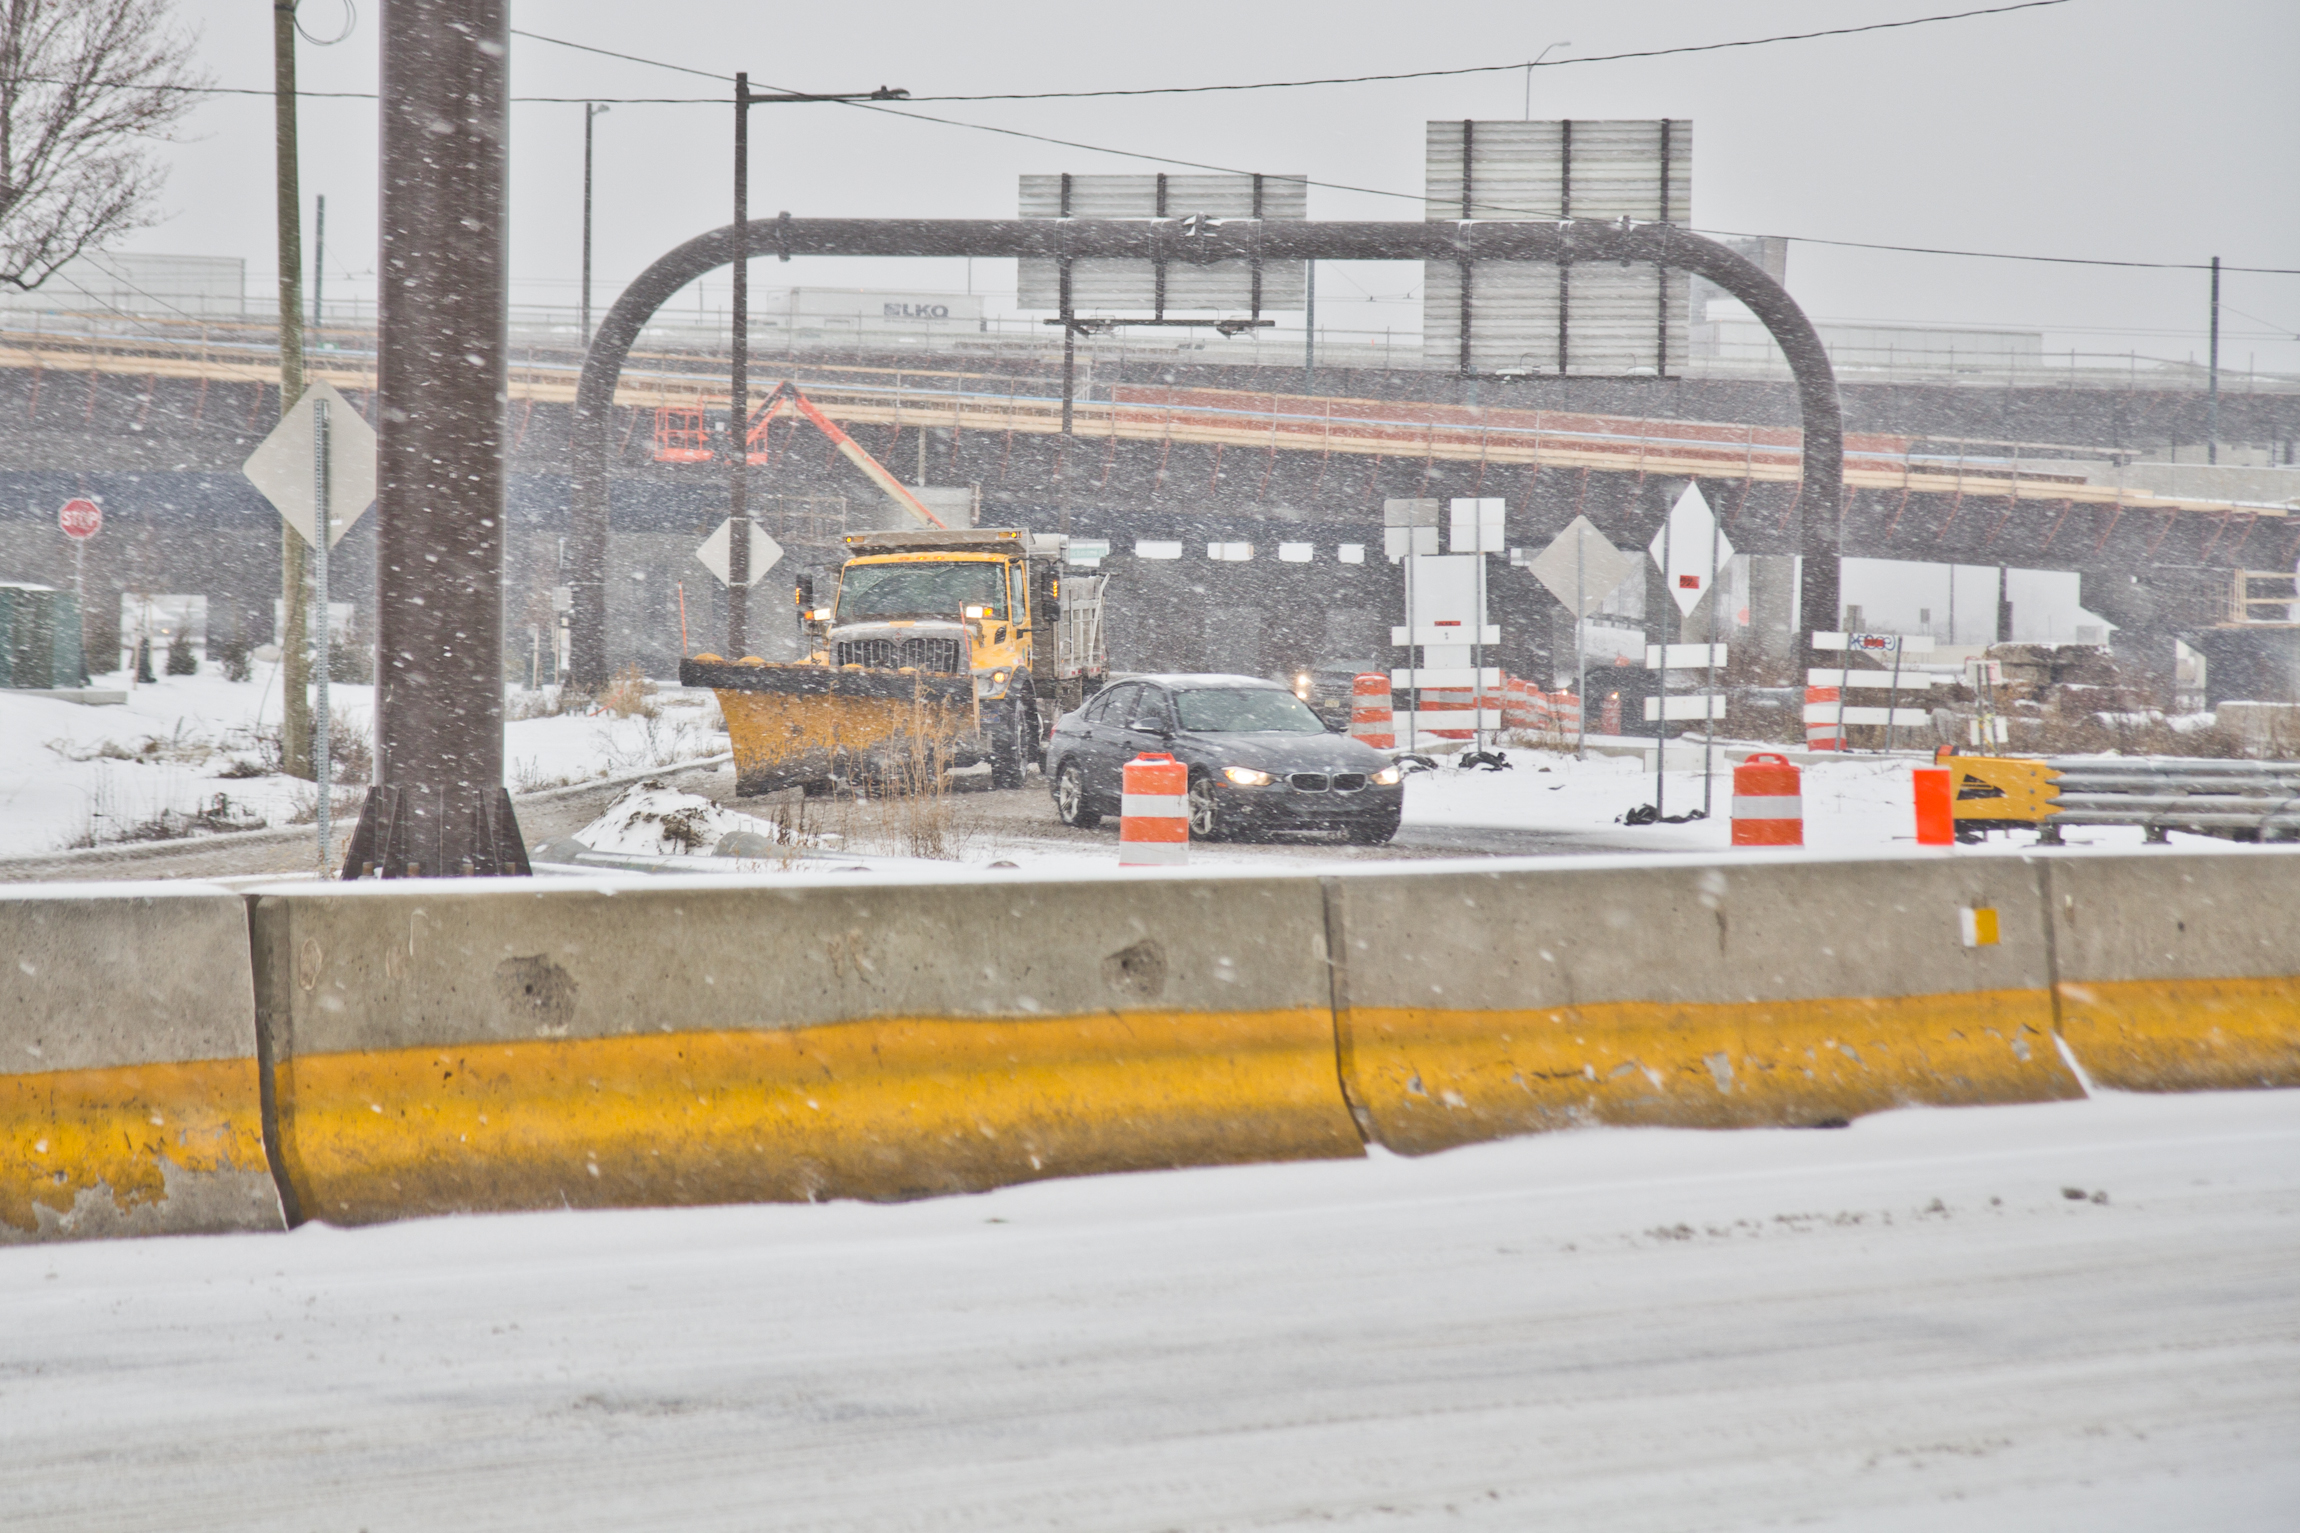 A PennDOT vehicle plows the entrance to 95 North during a snow storm